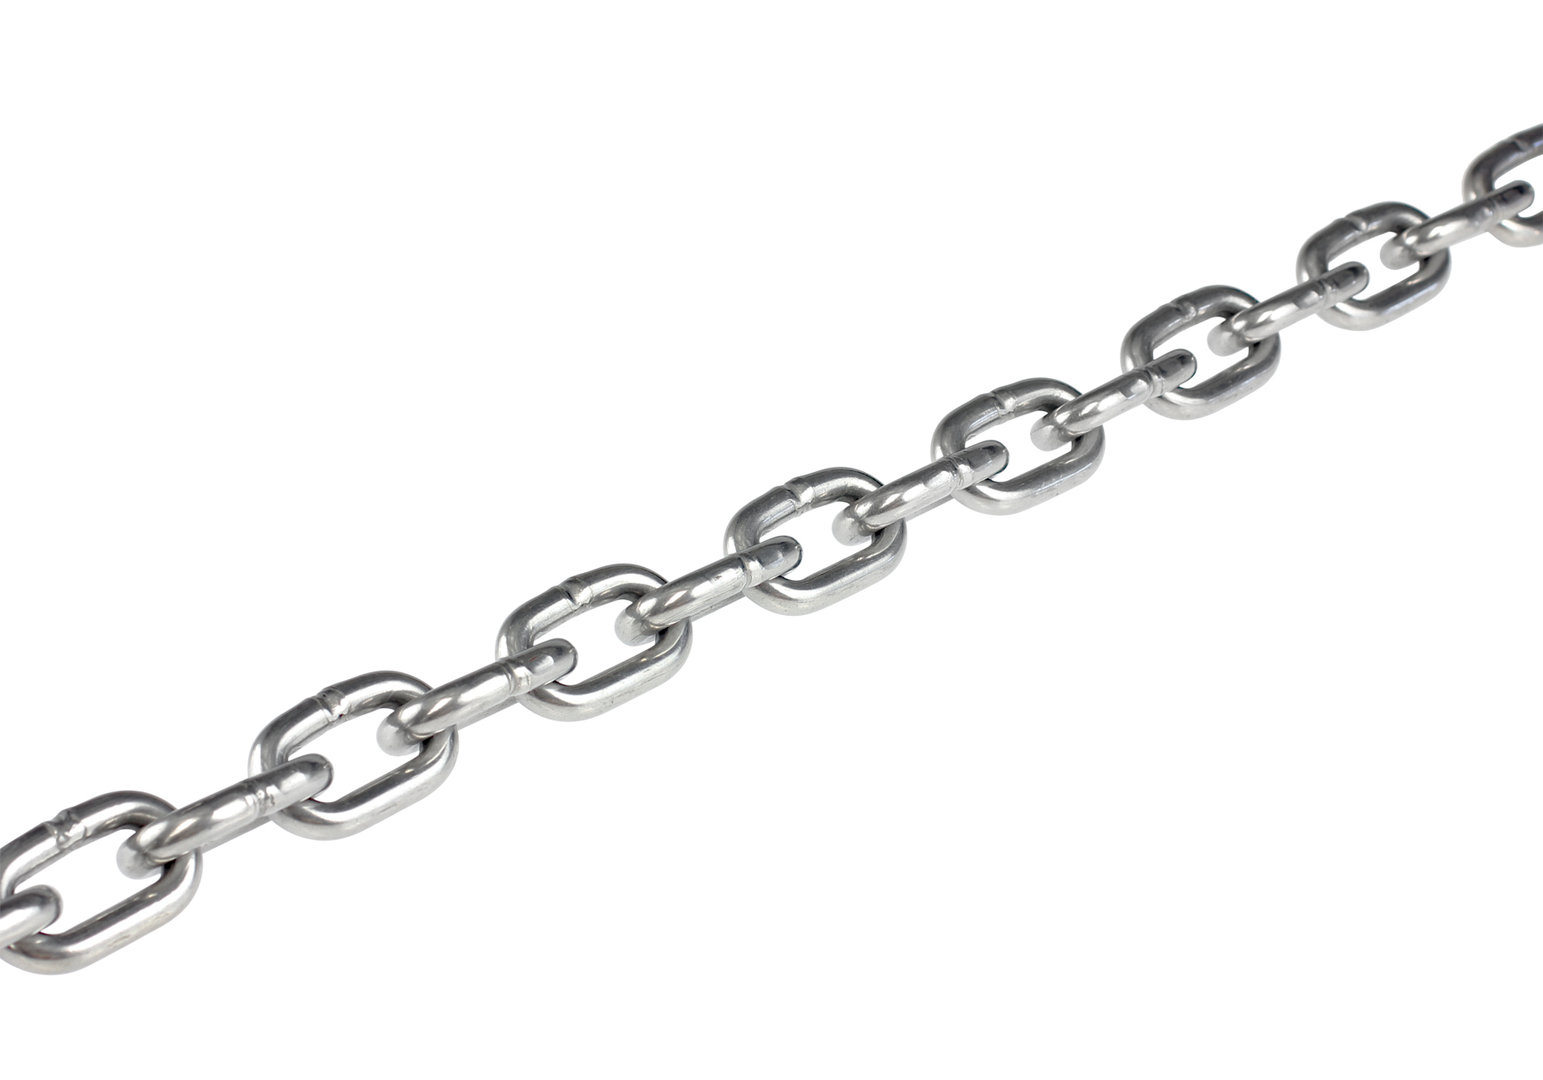 galvanised steel products stainless hooks chain links mild chains gs